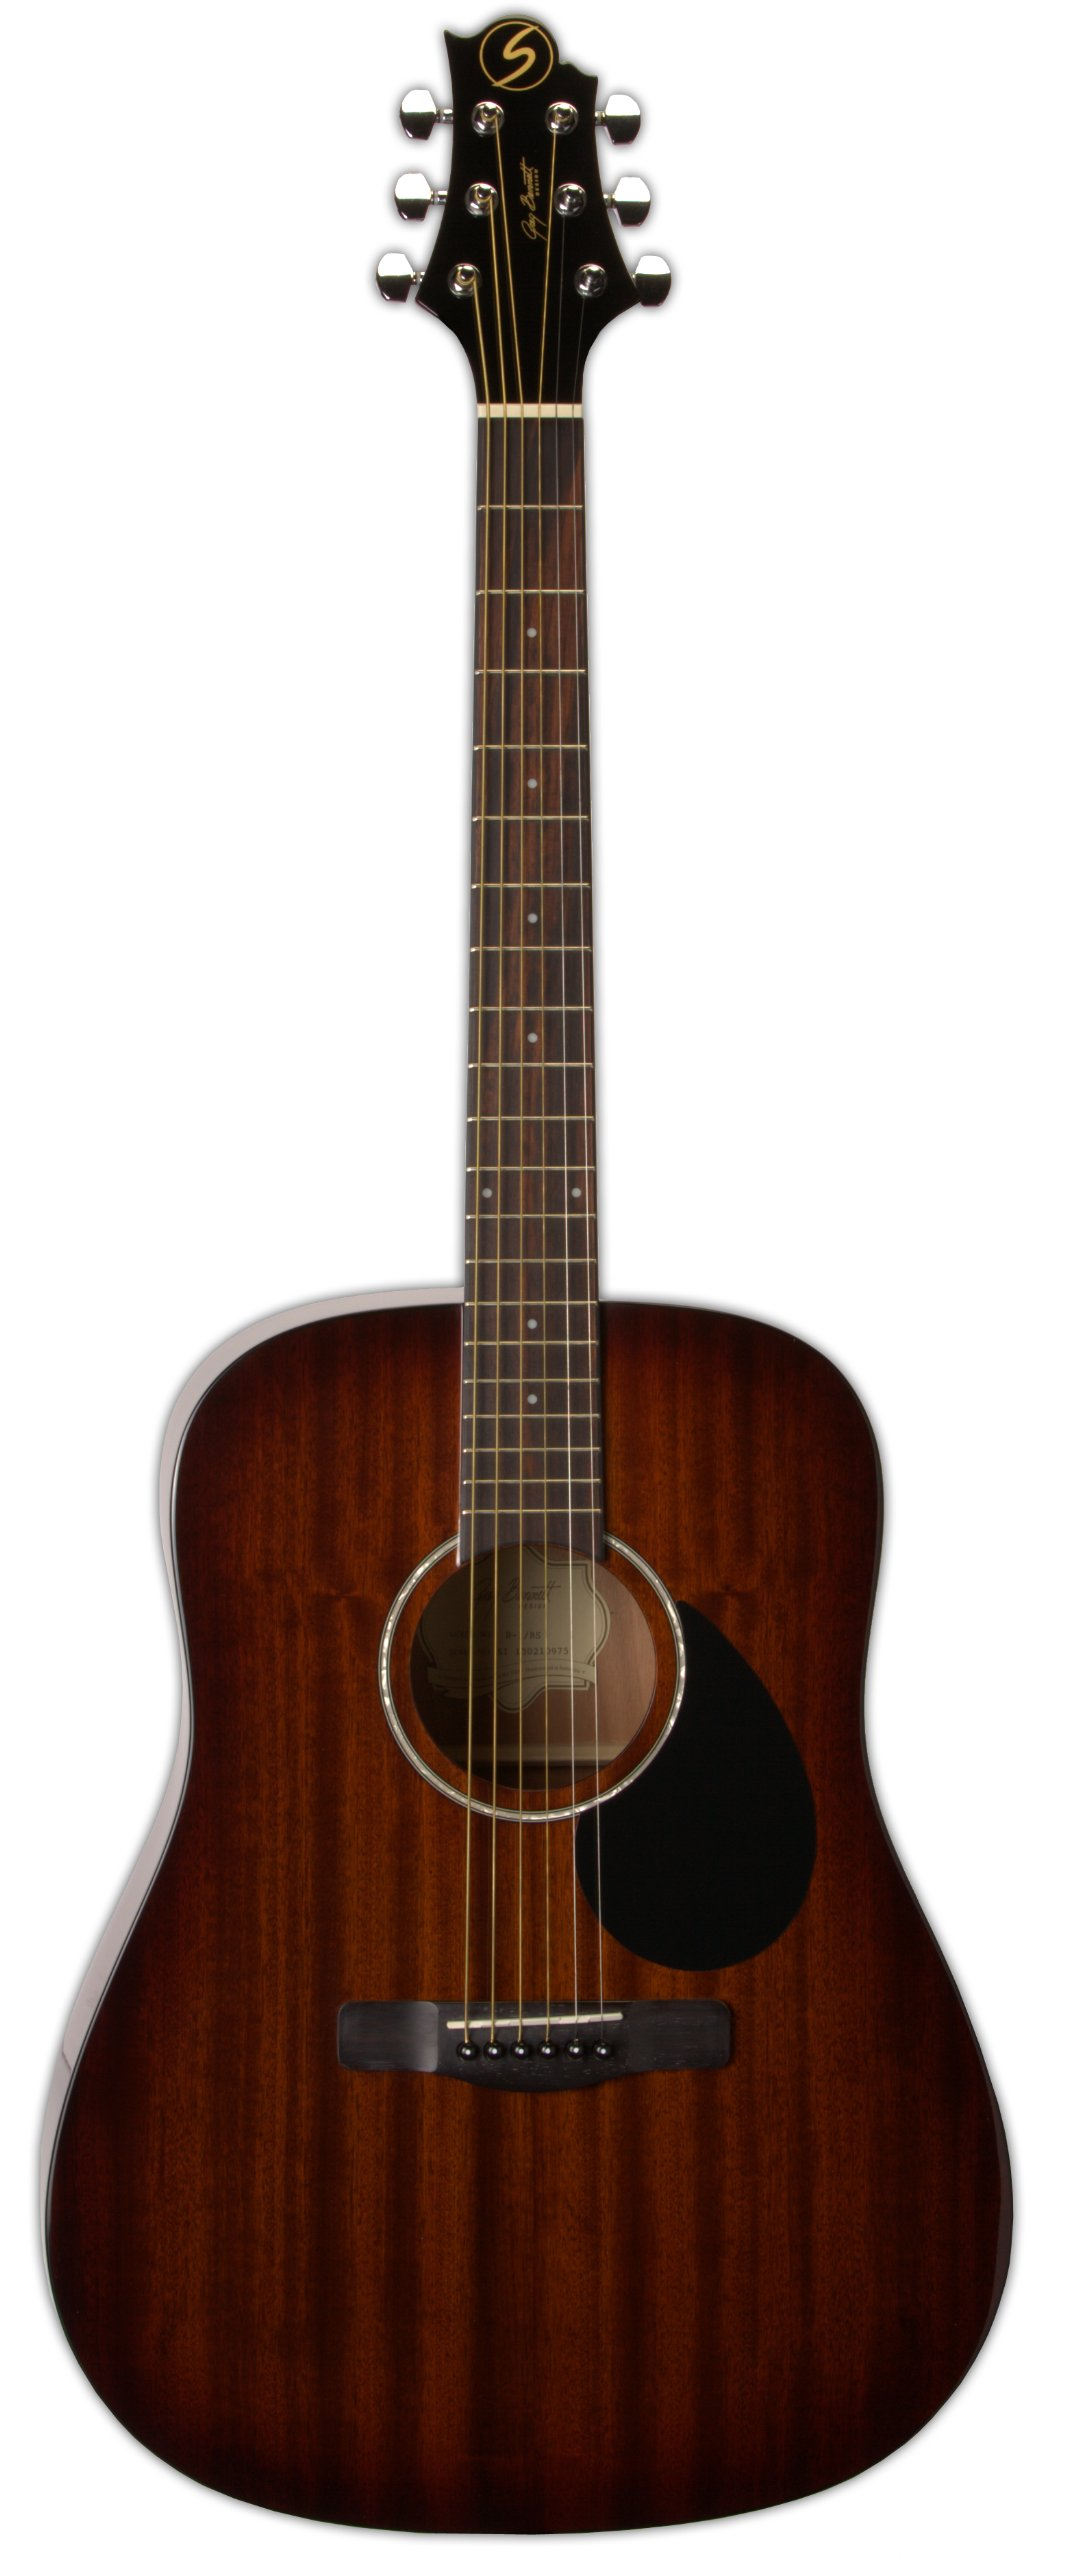 Greg Bennett Acoustic Guitar by Greg Bennett Design